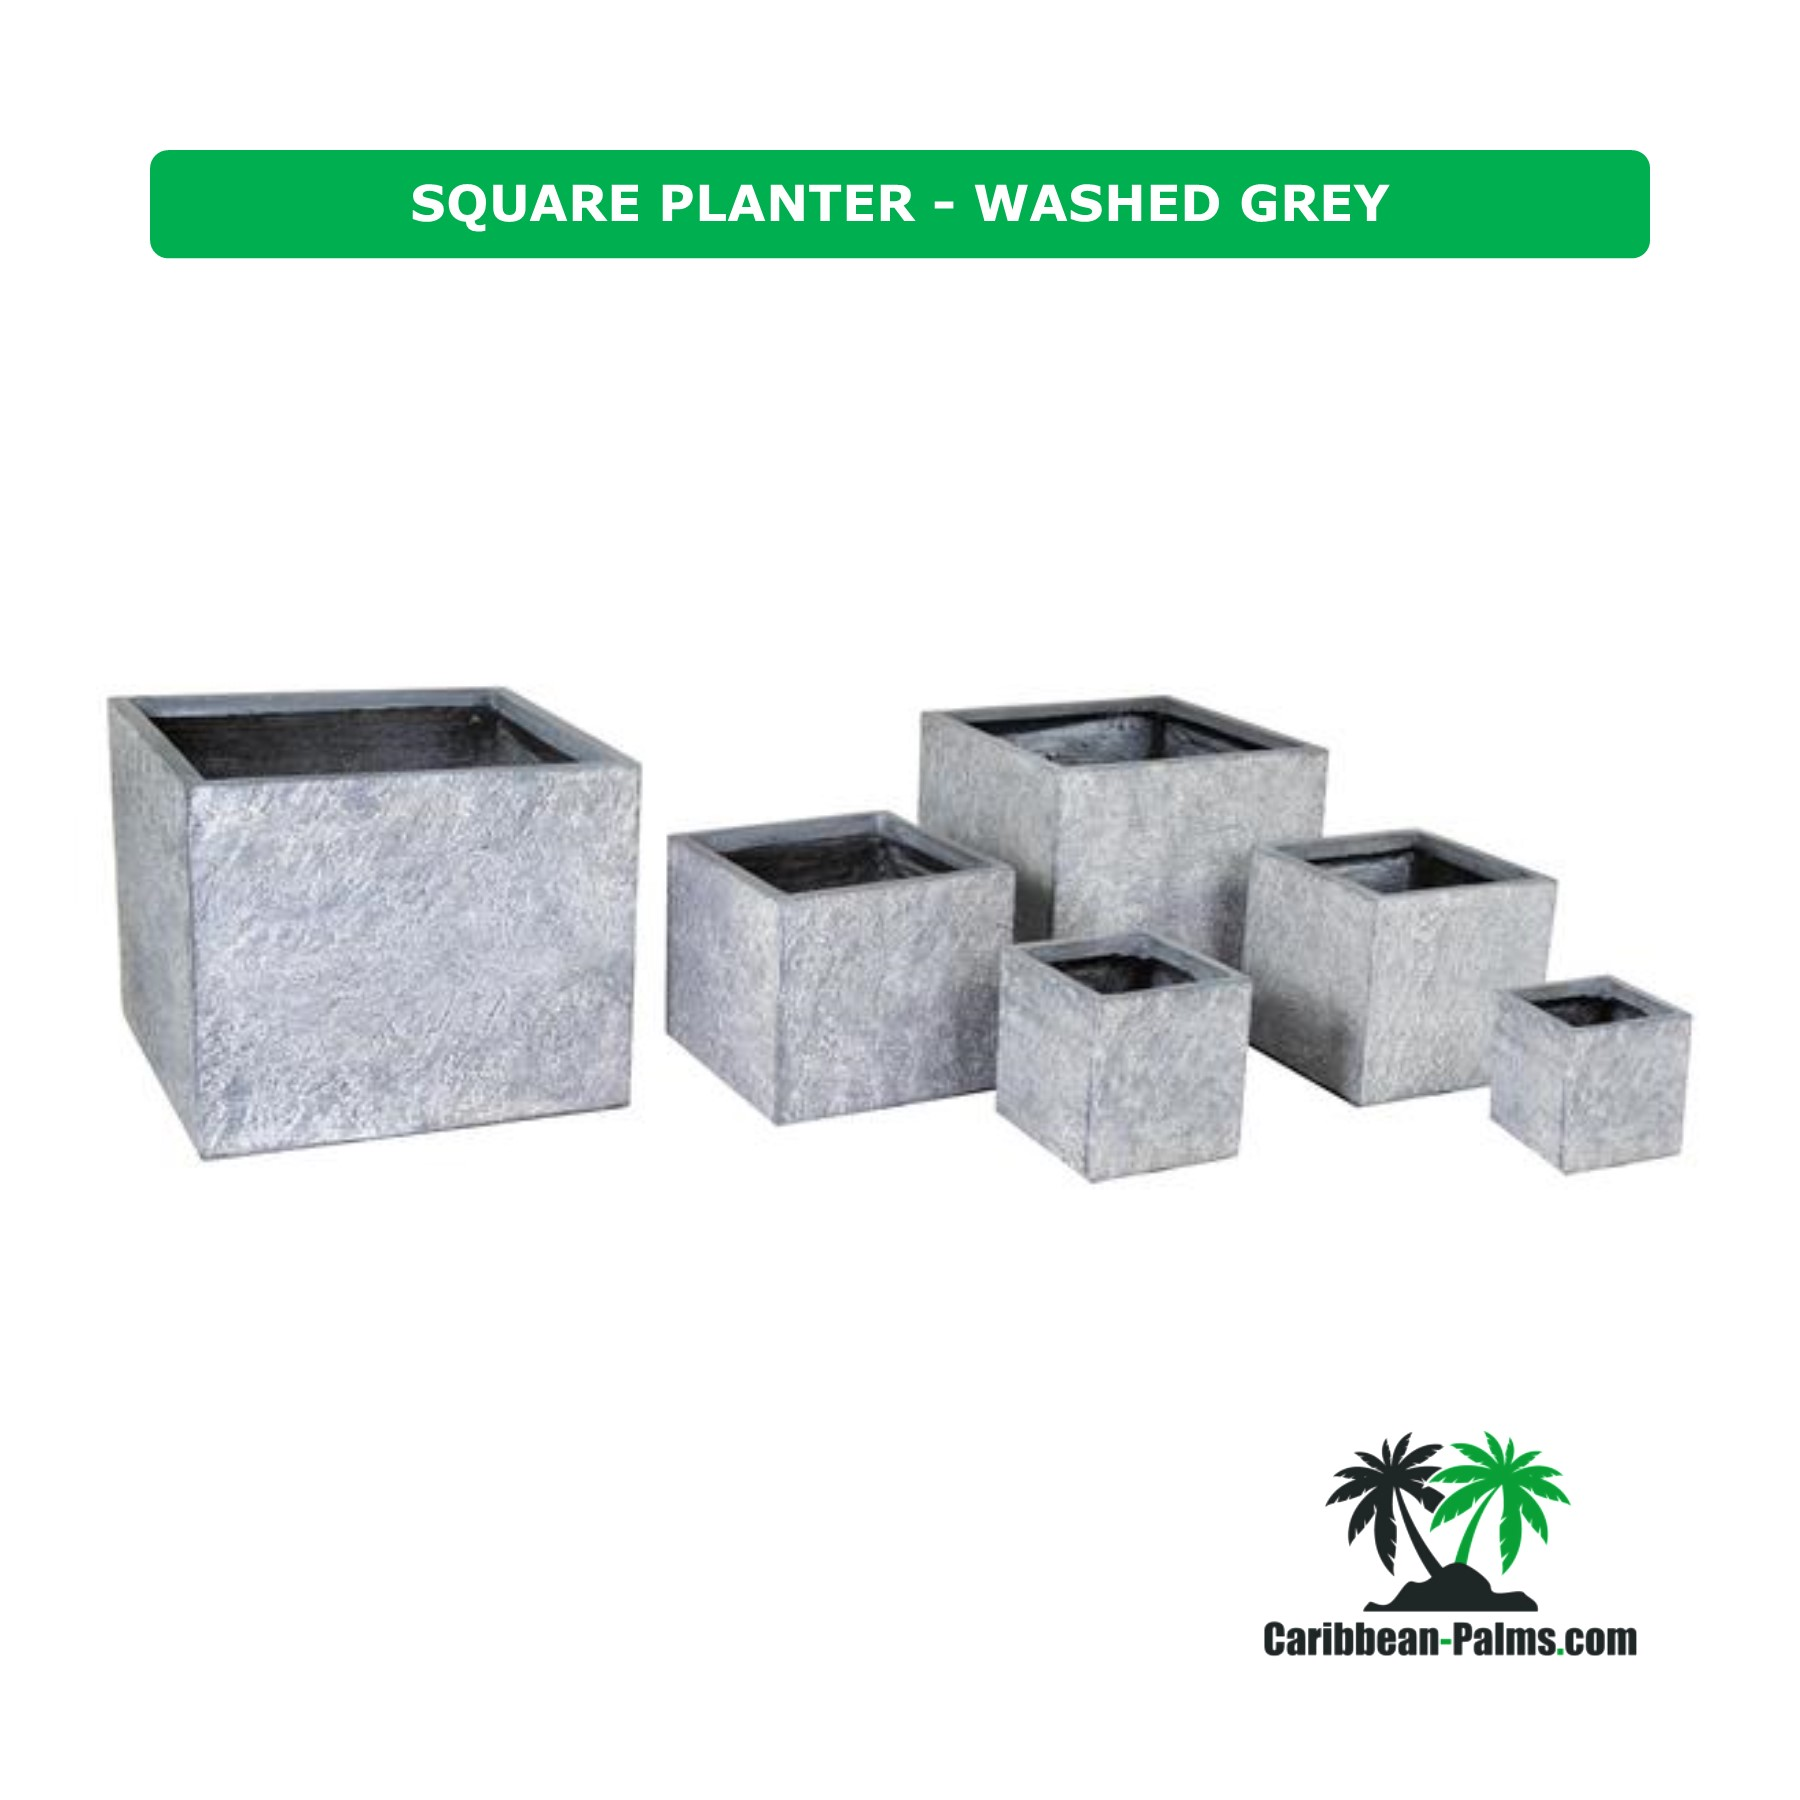 SQUARE PLANTER WASHED GREY